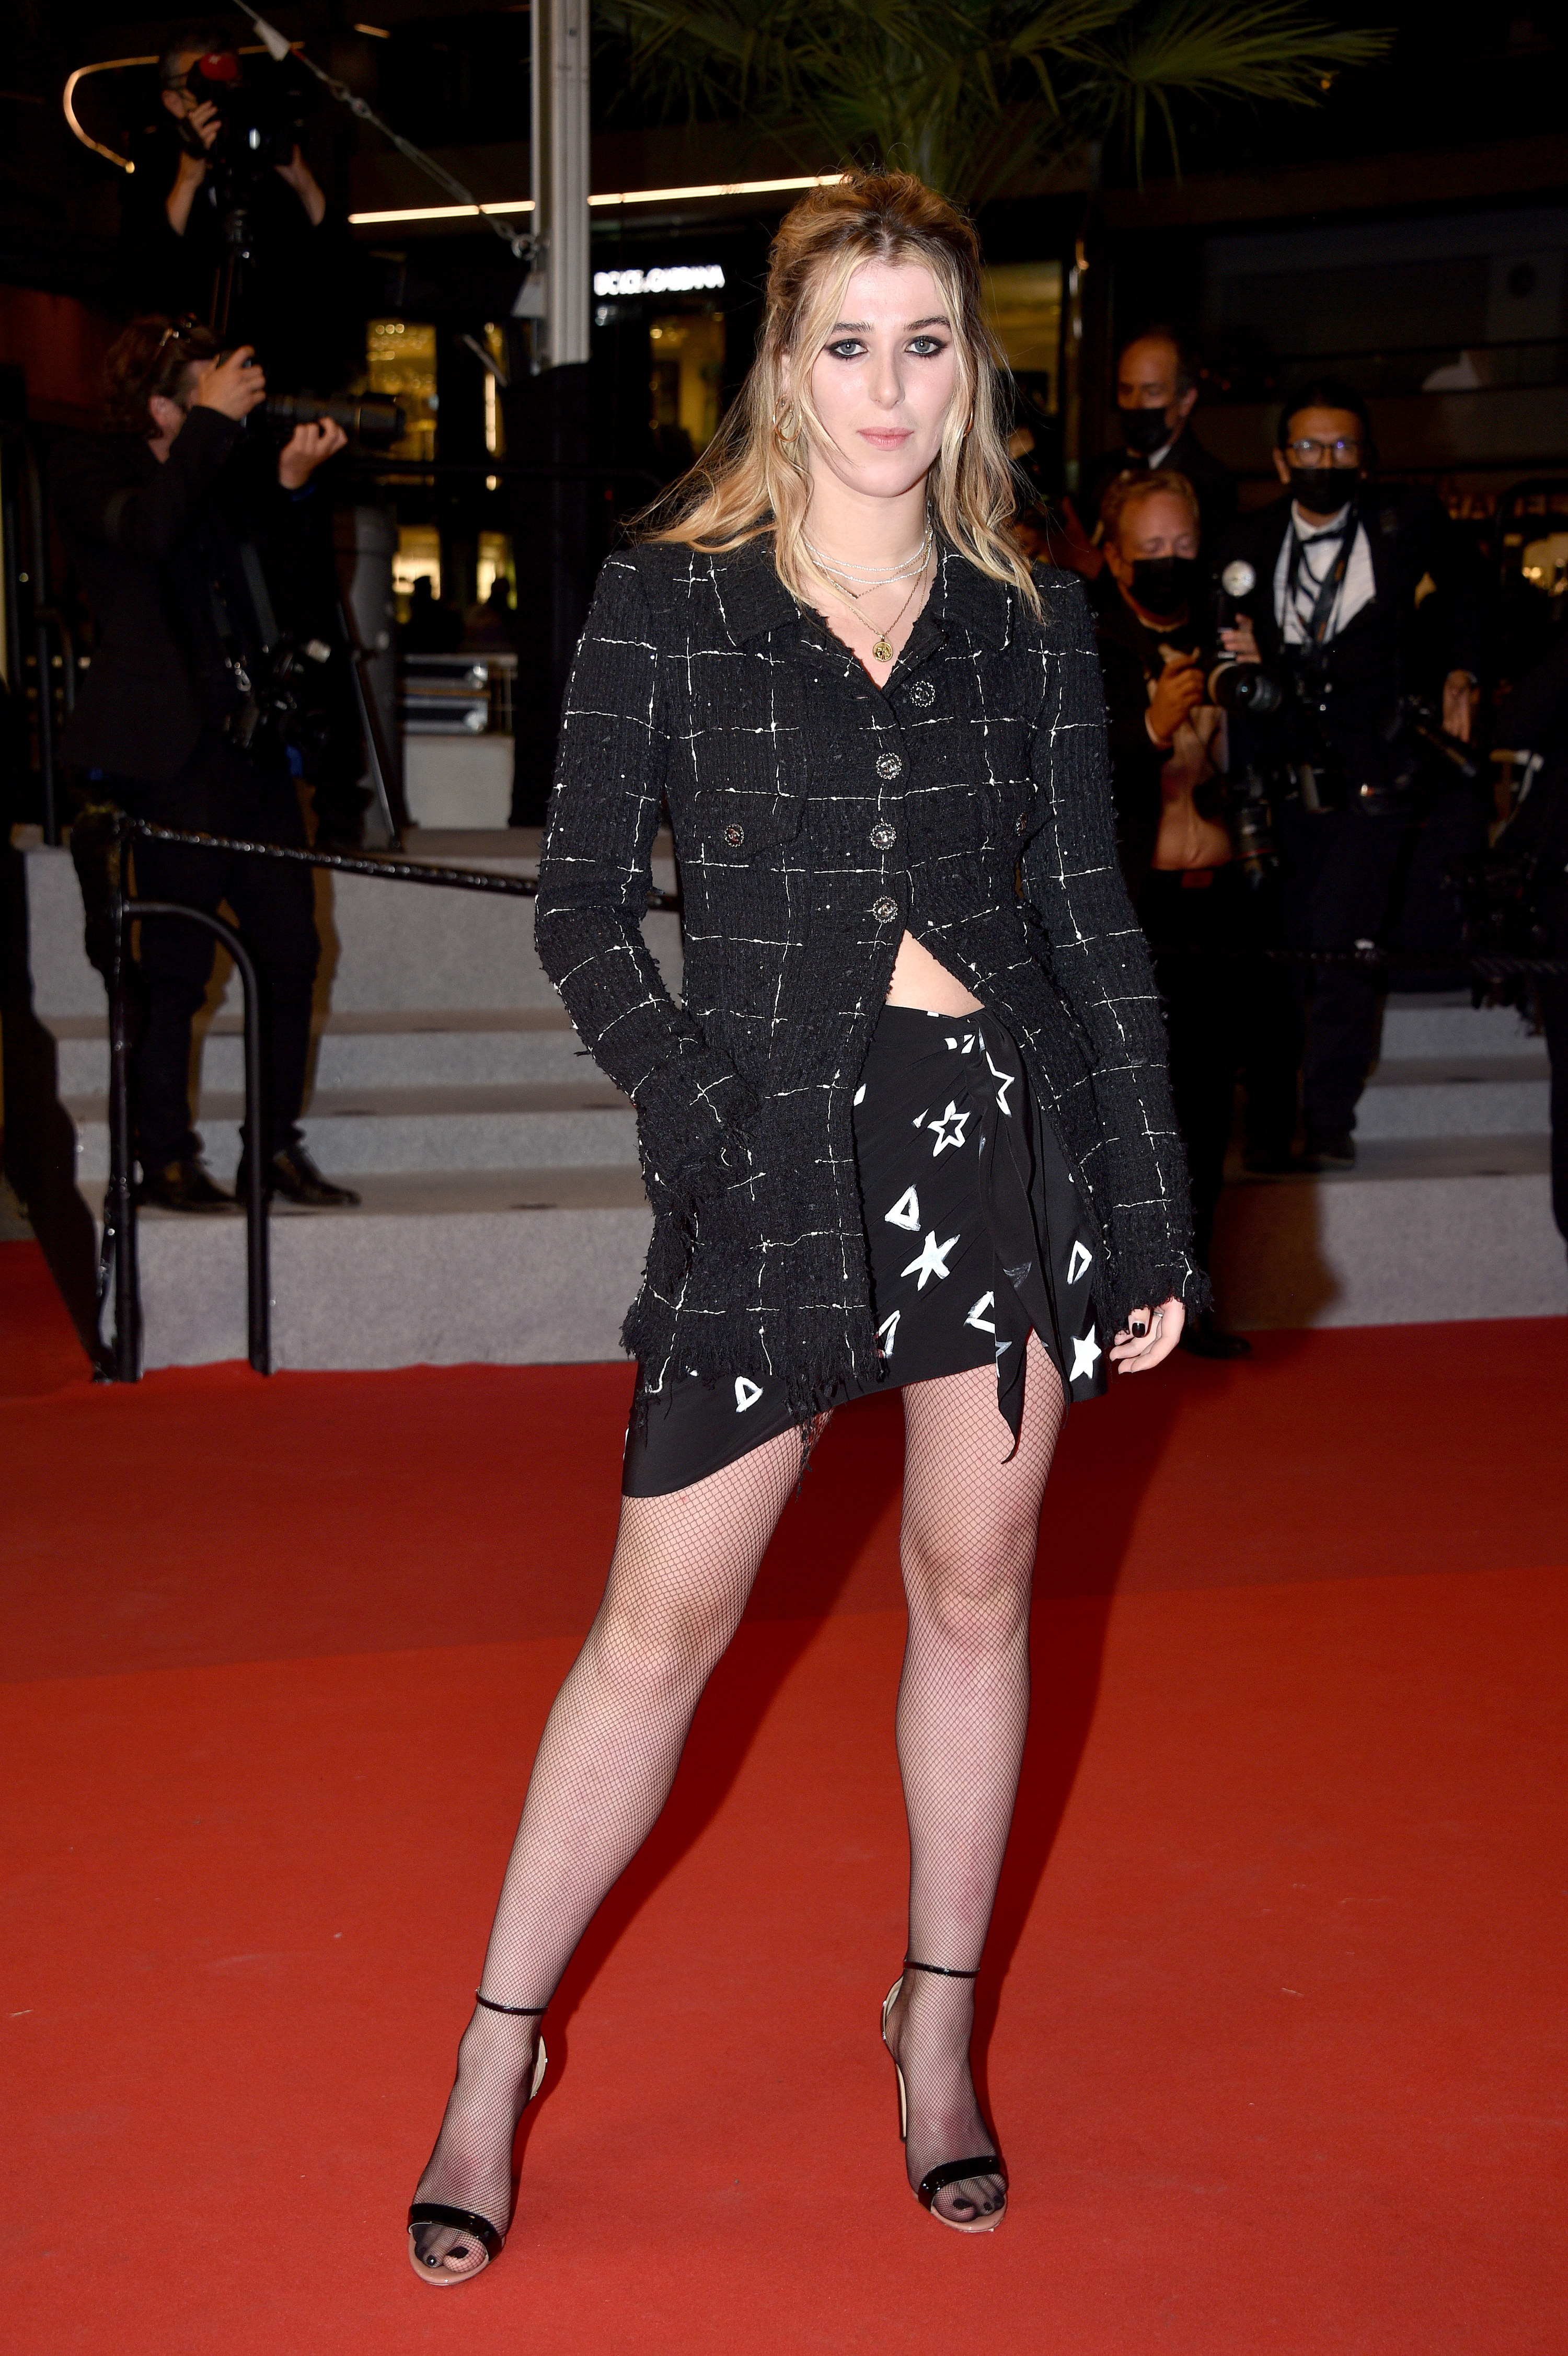 Honor Swinton Byrne appears at the Cannes Film Festival